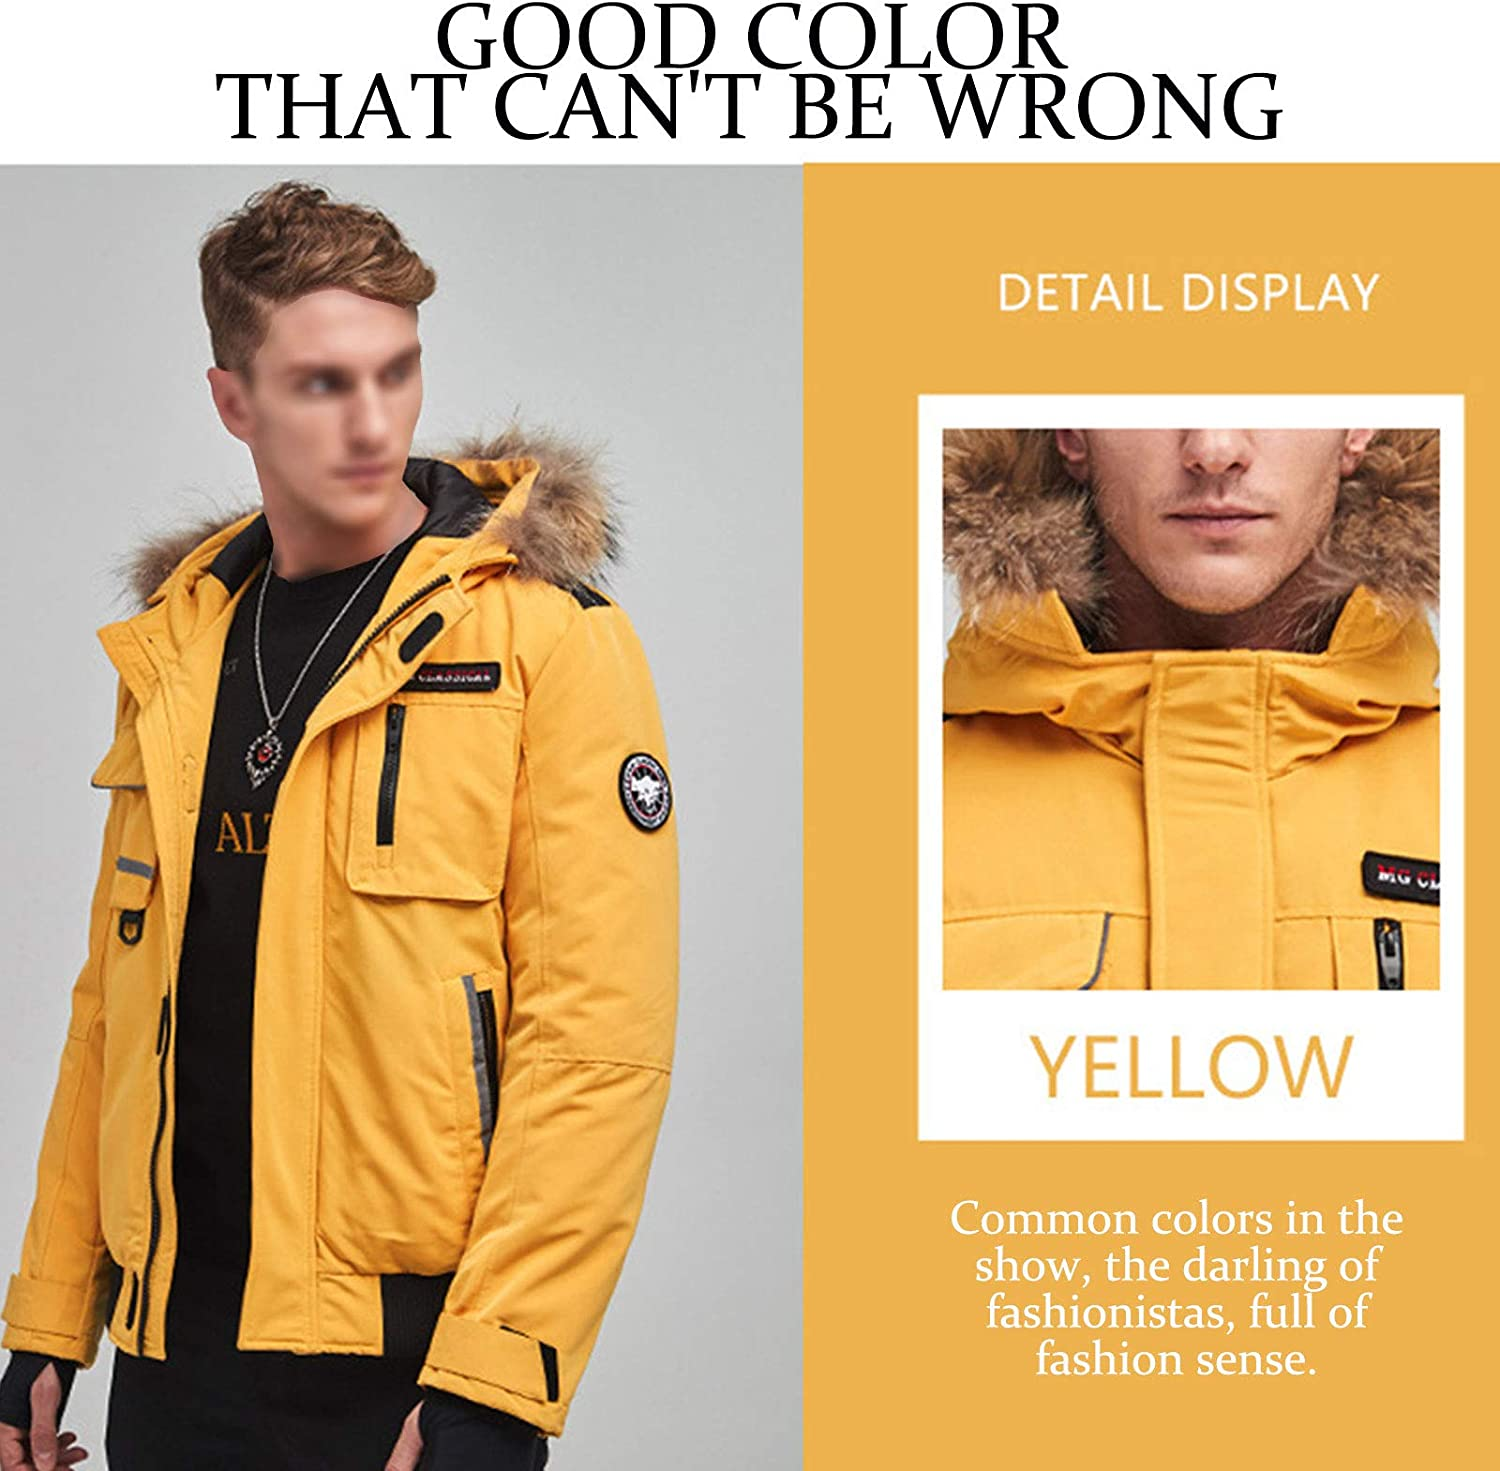 DUTUI Men's Winter Down Jacket, 80% White Duck Down Short Thick Down Jacket Casual Workwear Men's and Women's Warm Down Jacket,Yellow,6XL